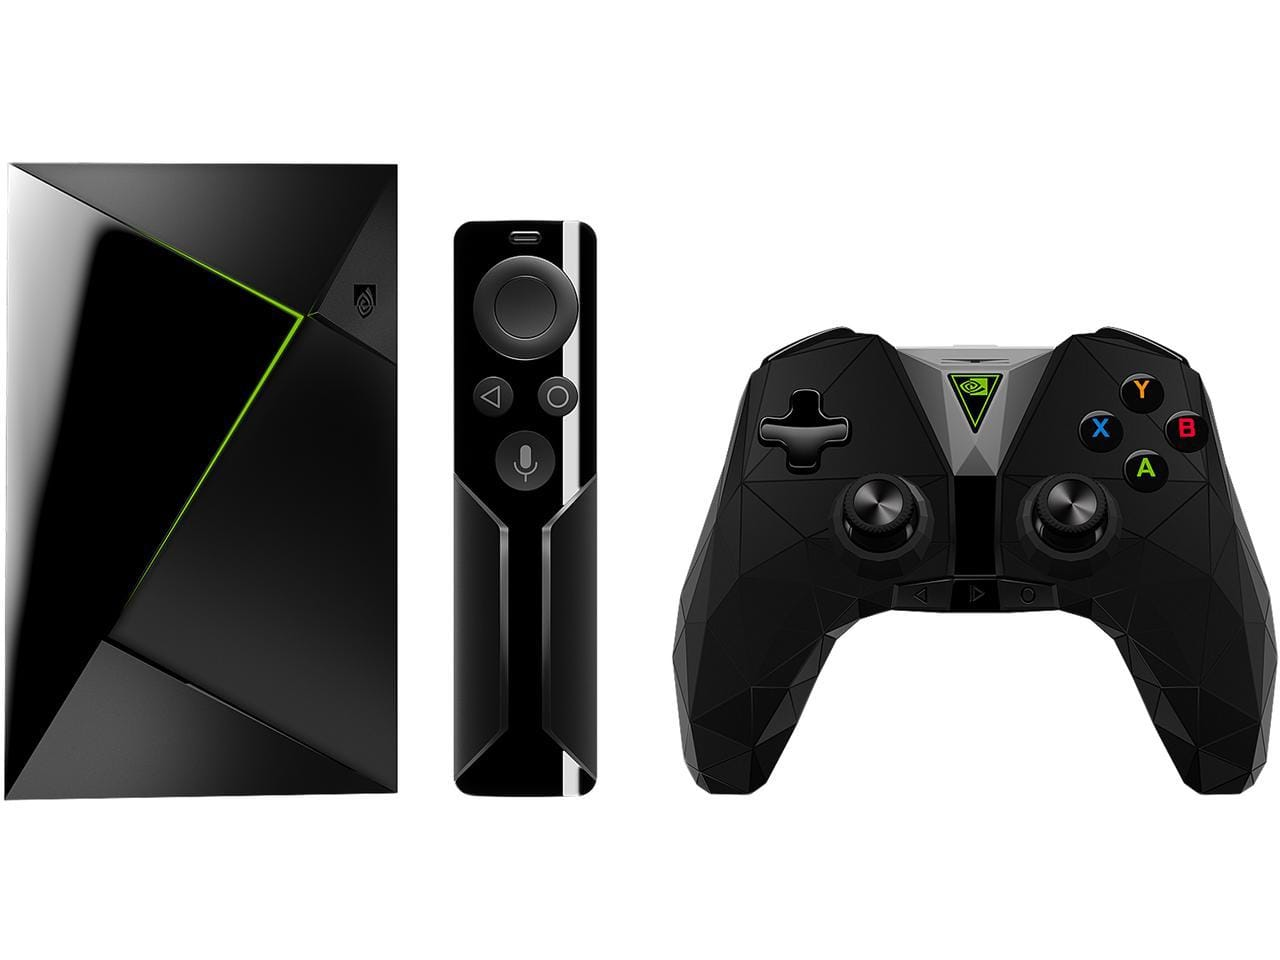 2017 Nvidia Shield Android TV 16GB $189.99; 500GB Pro $289.99; remote $44.99; game controller $44.99; stand $14.99 AC @ NewEgg